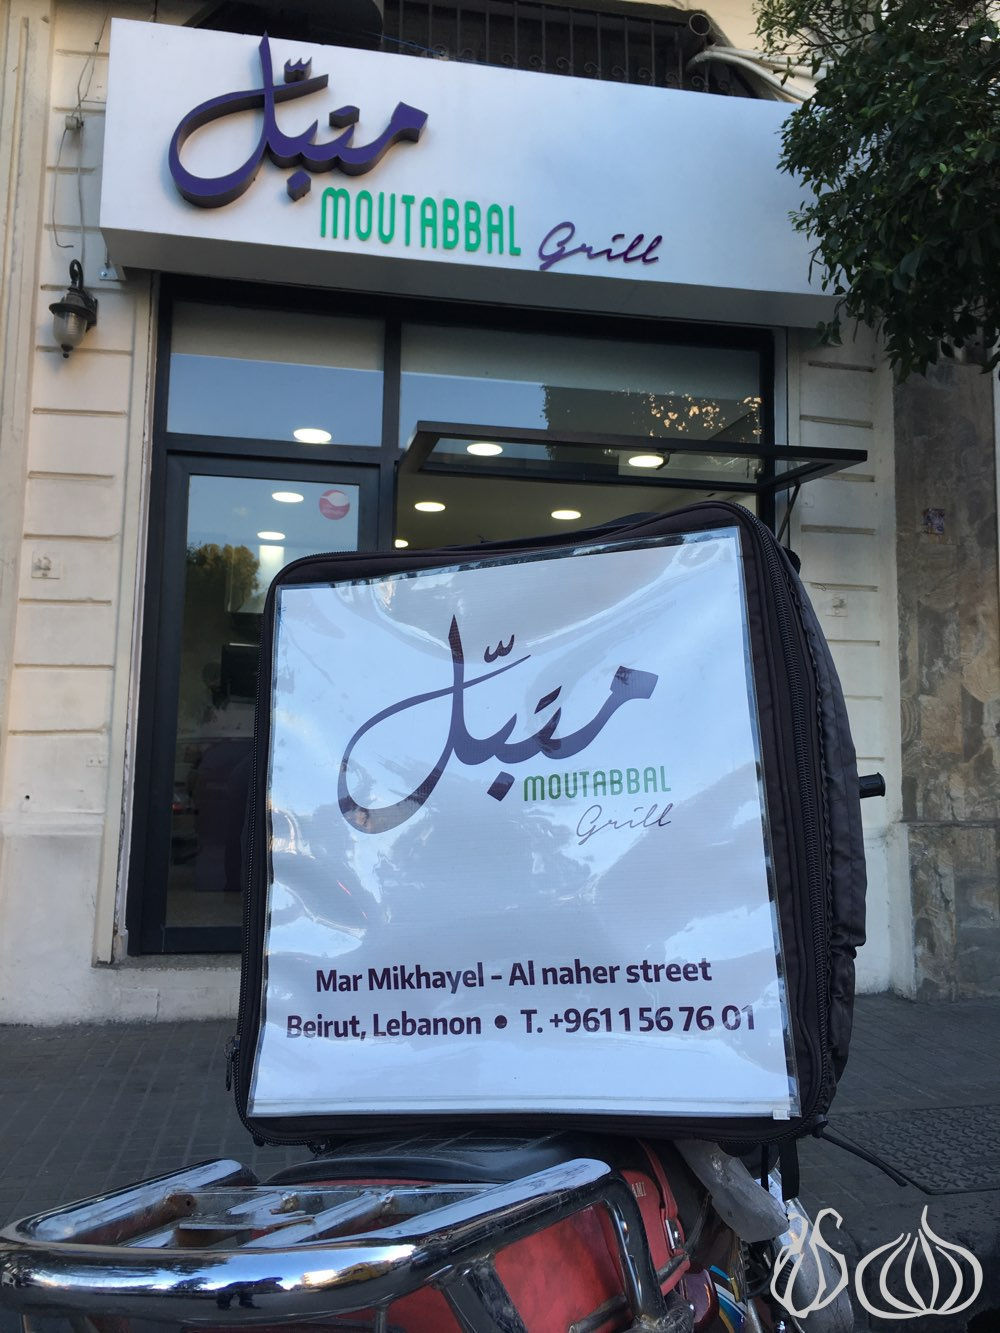 moutabbal-grill-mar-mikhael12015-11-30-09-45-53